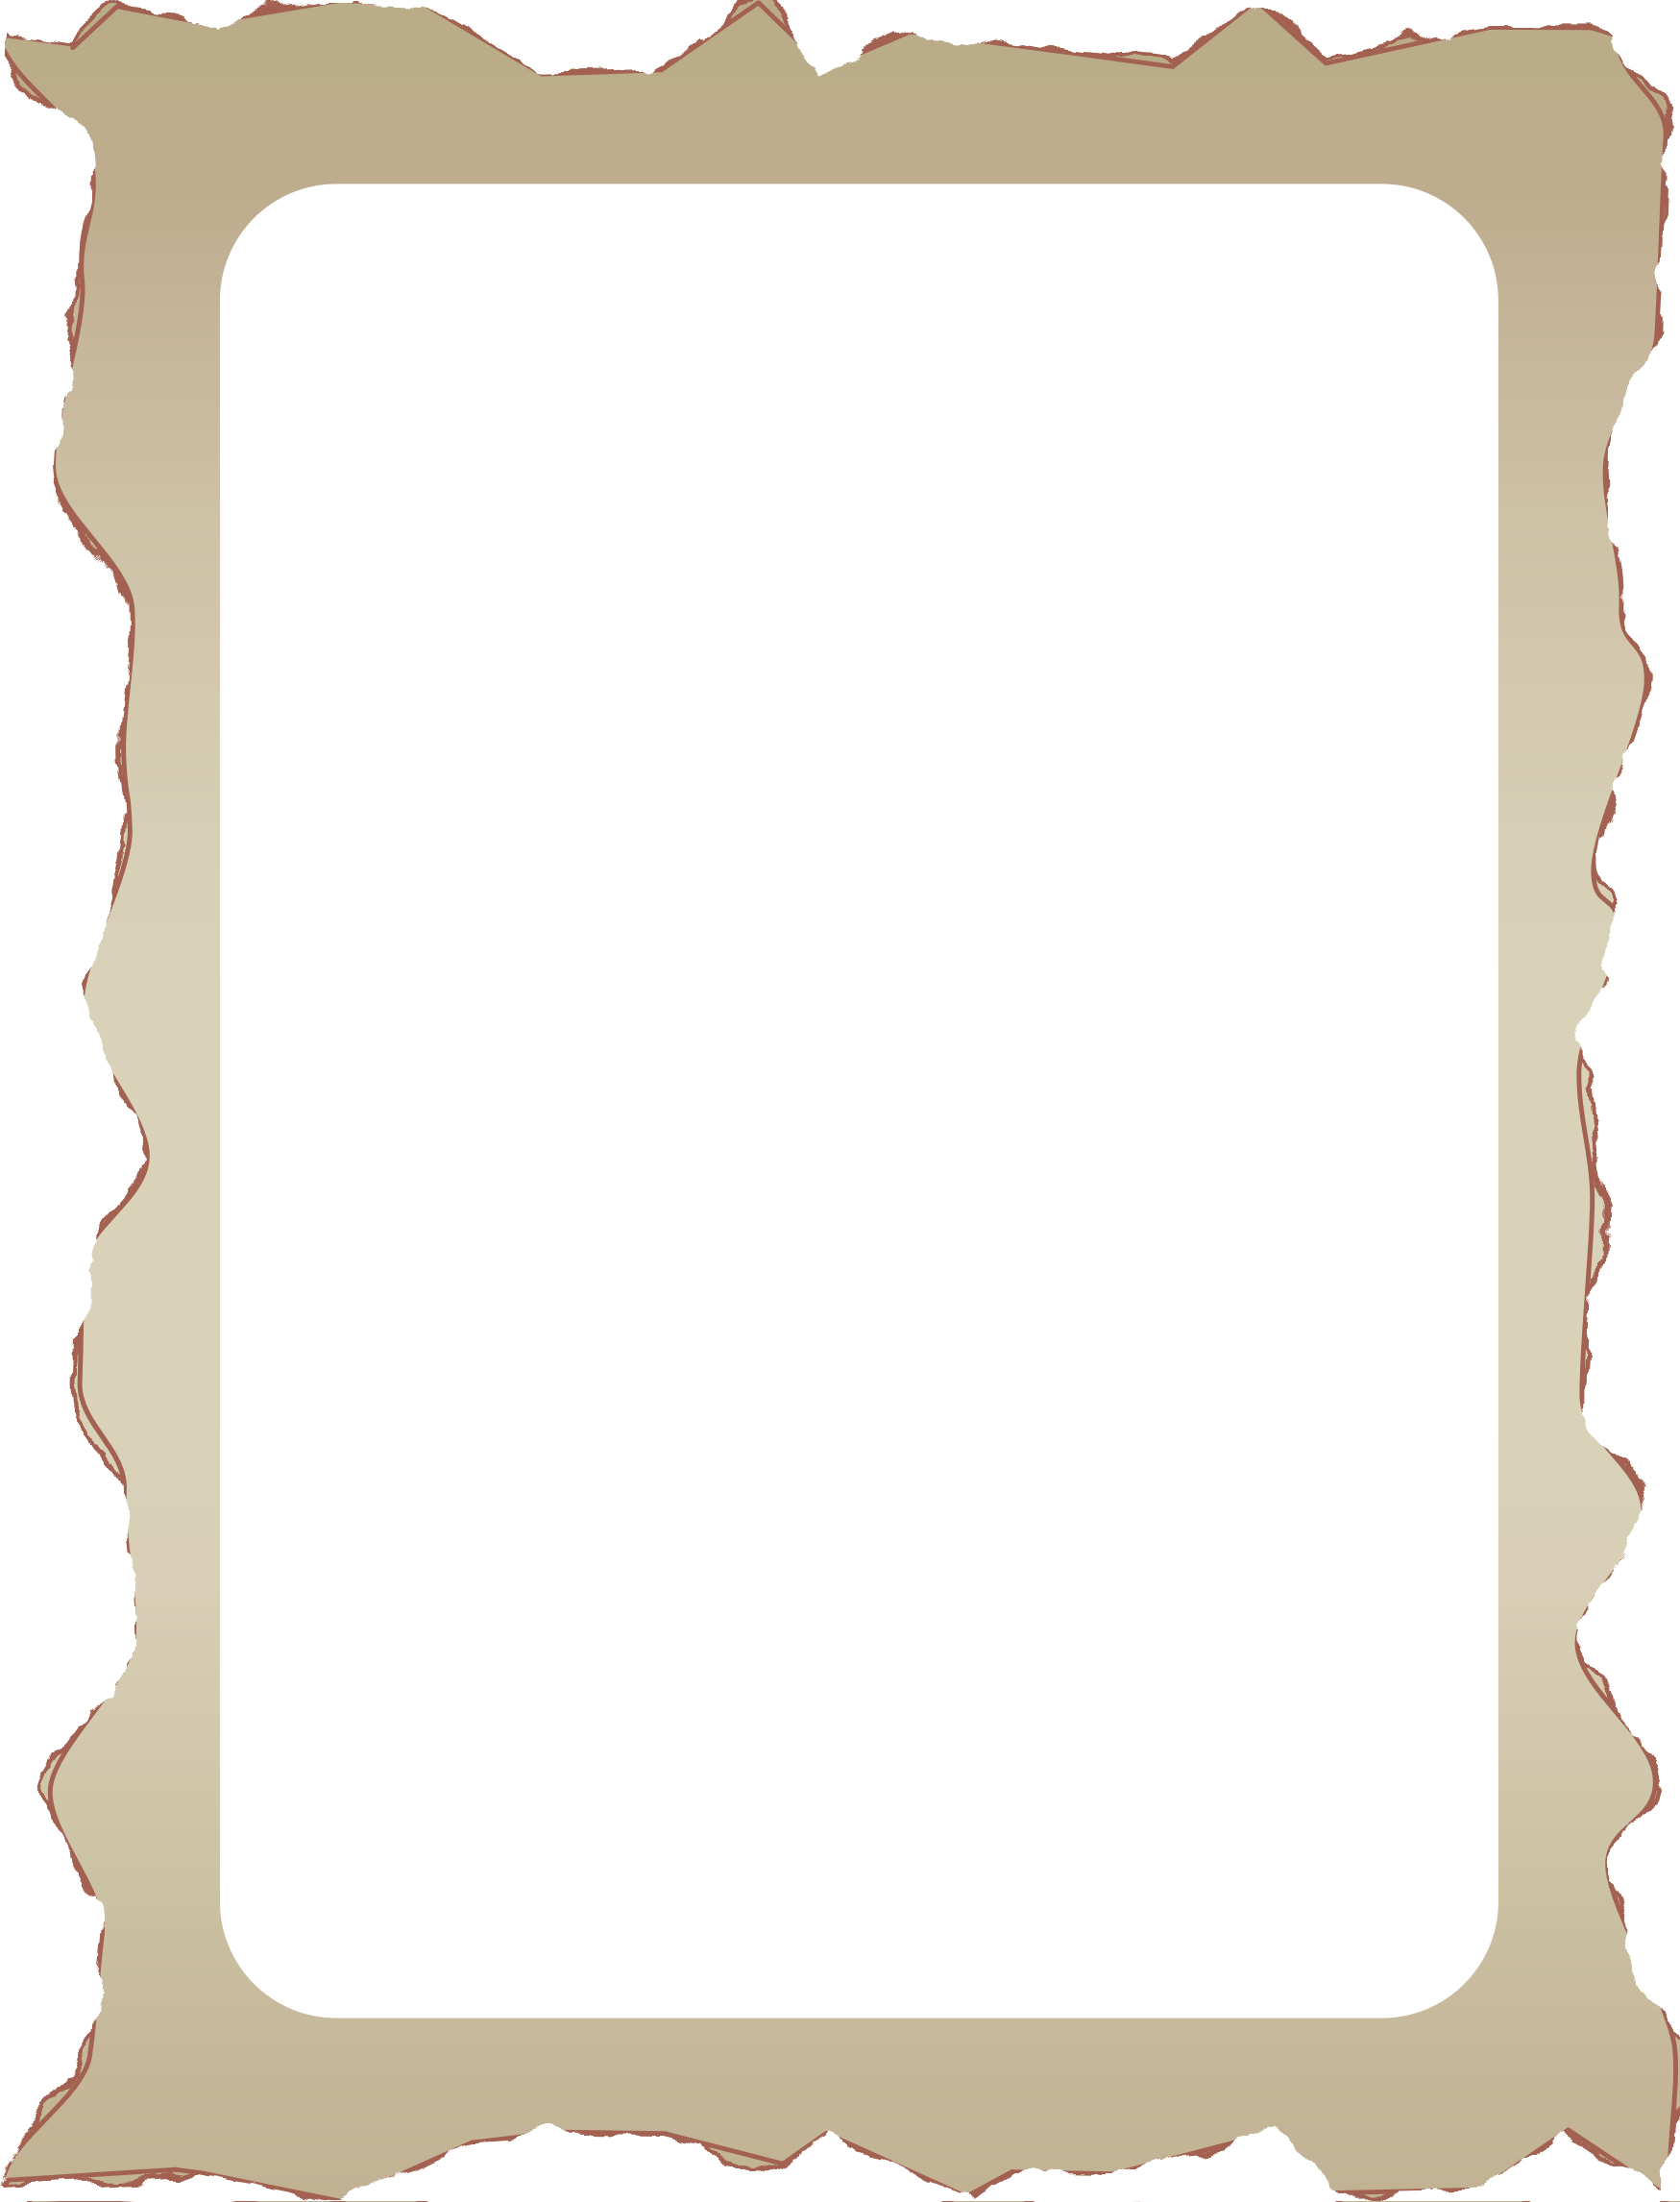 Paper border free on. Clipart map old